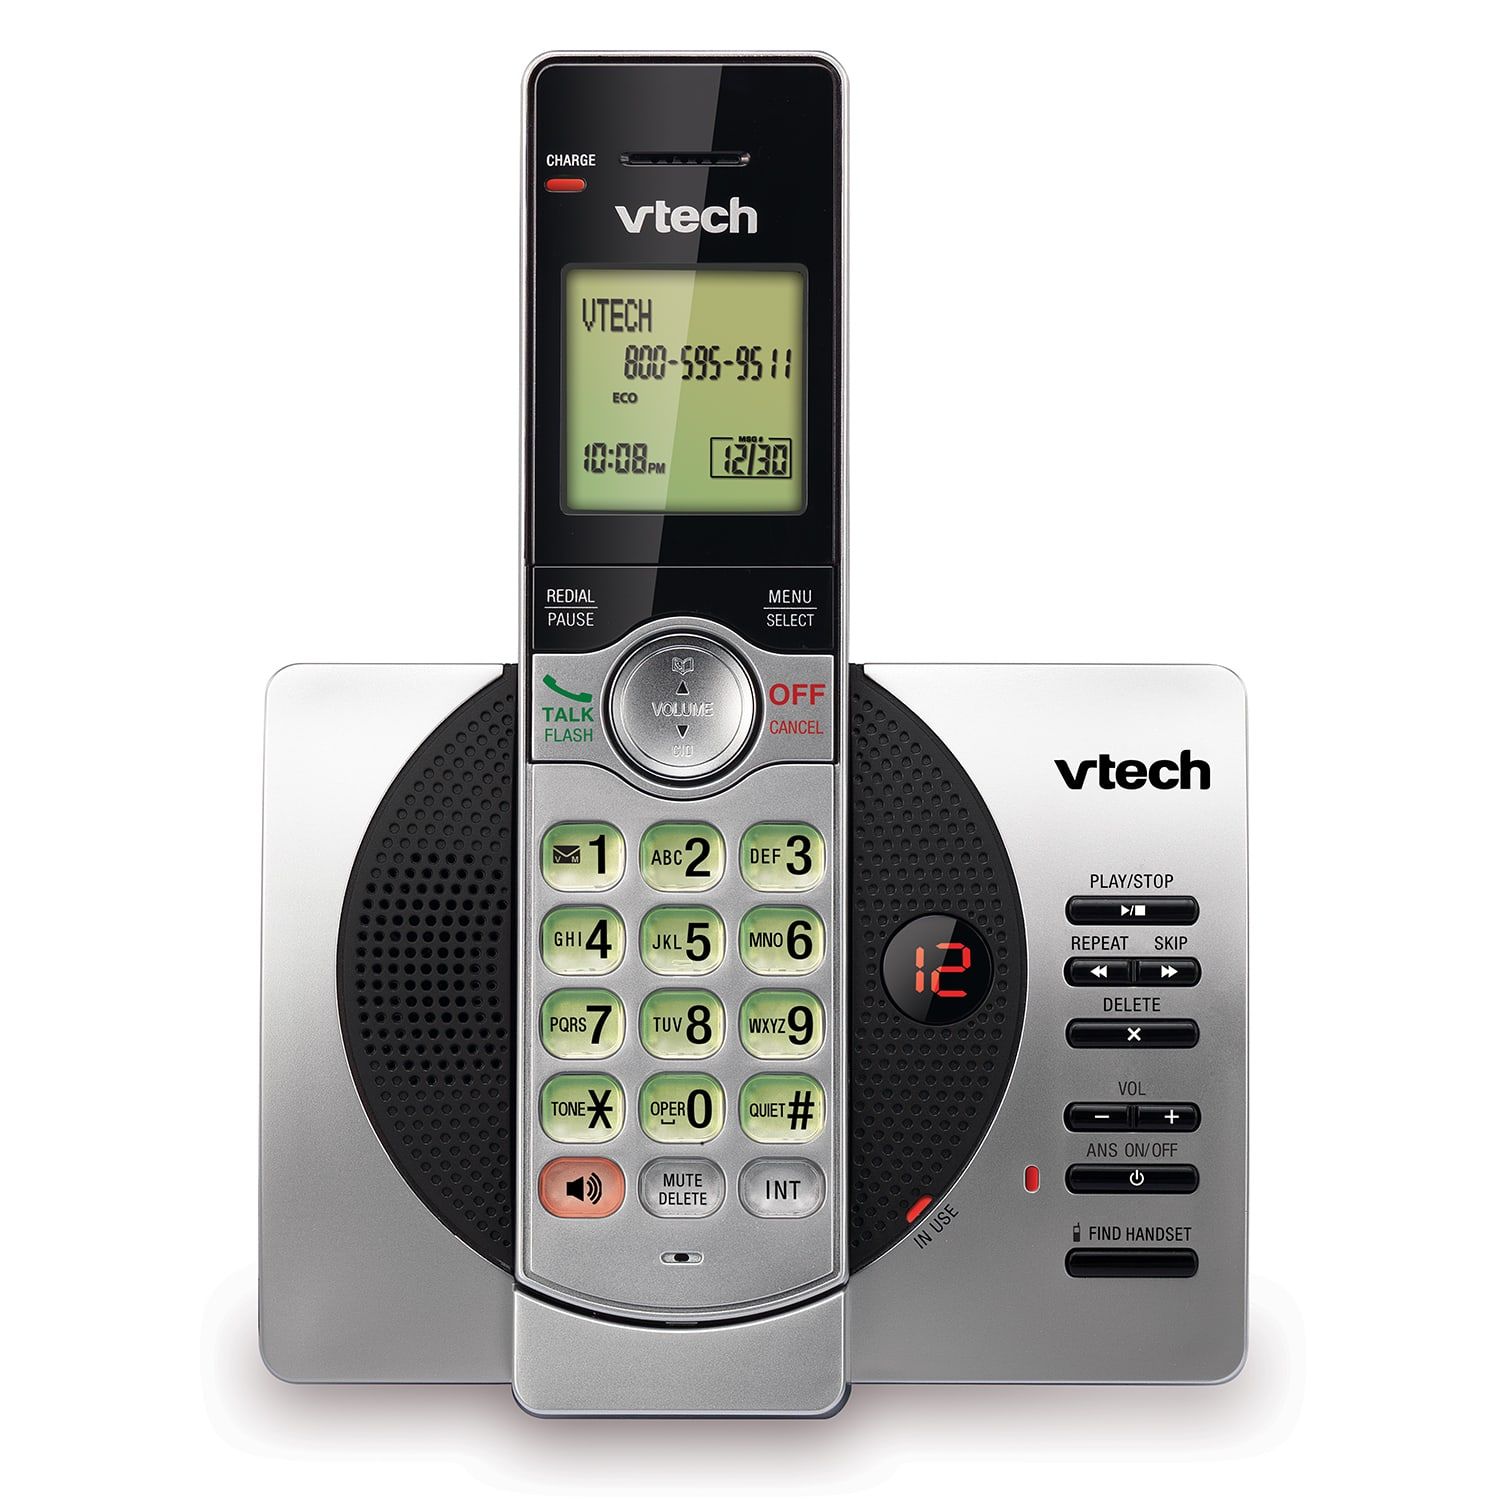 cordless answering system with caller id call waiting cs6929 rh vtechphones com vtech cordless phone owner's manual VTech Cordless Phone User Manual